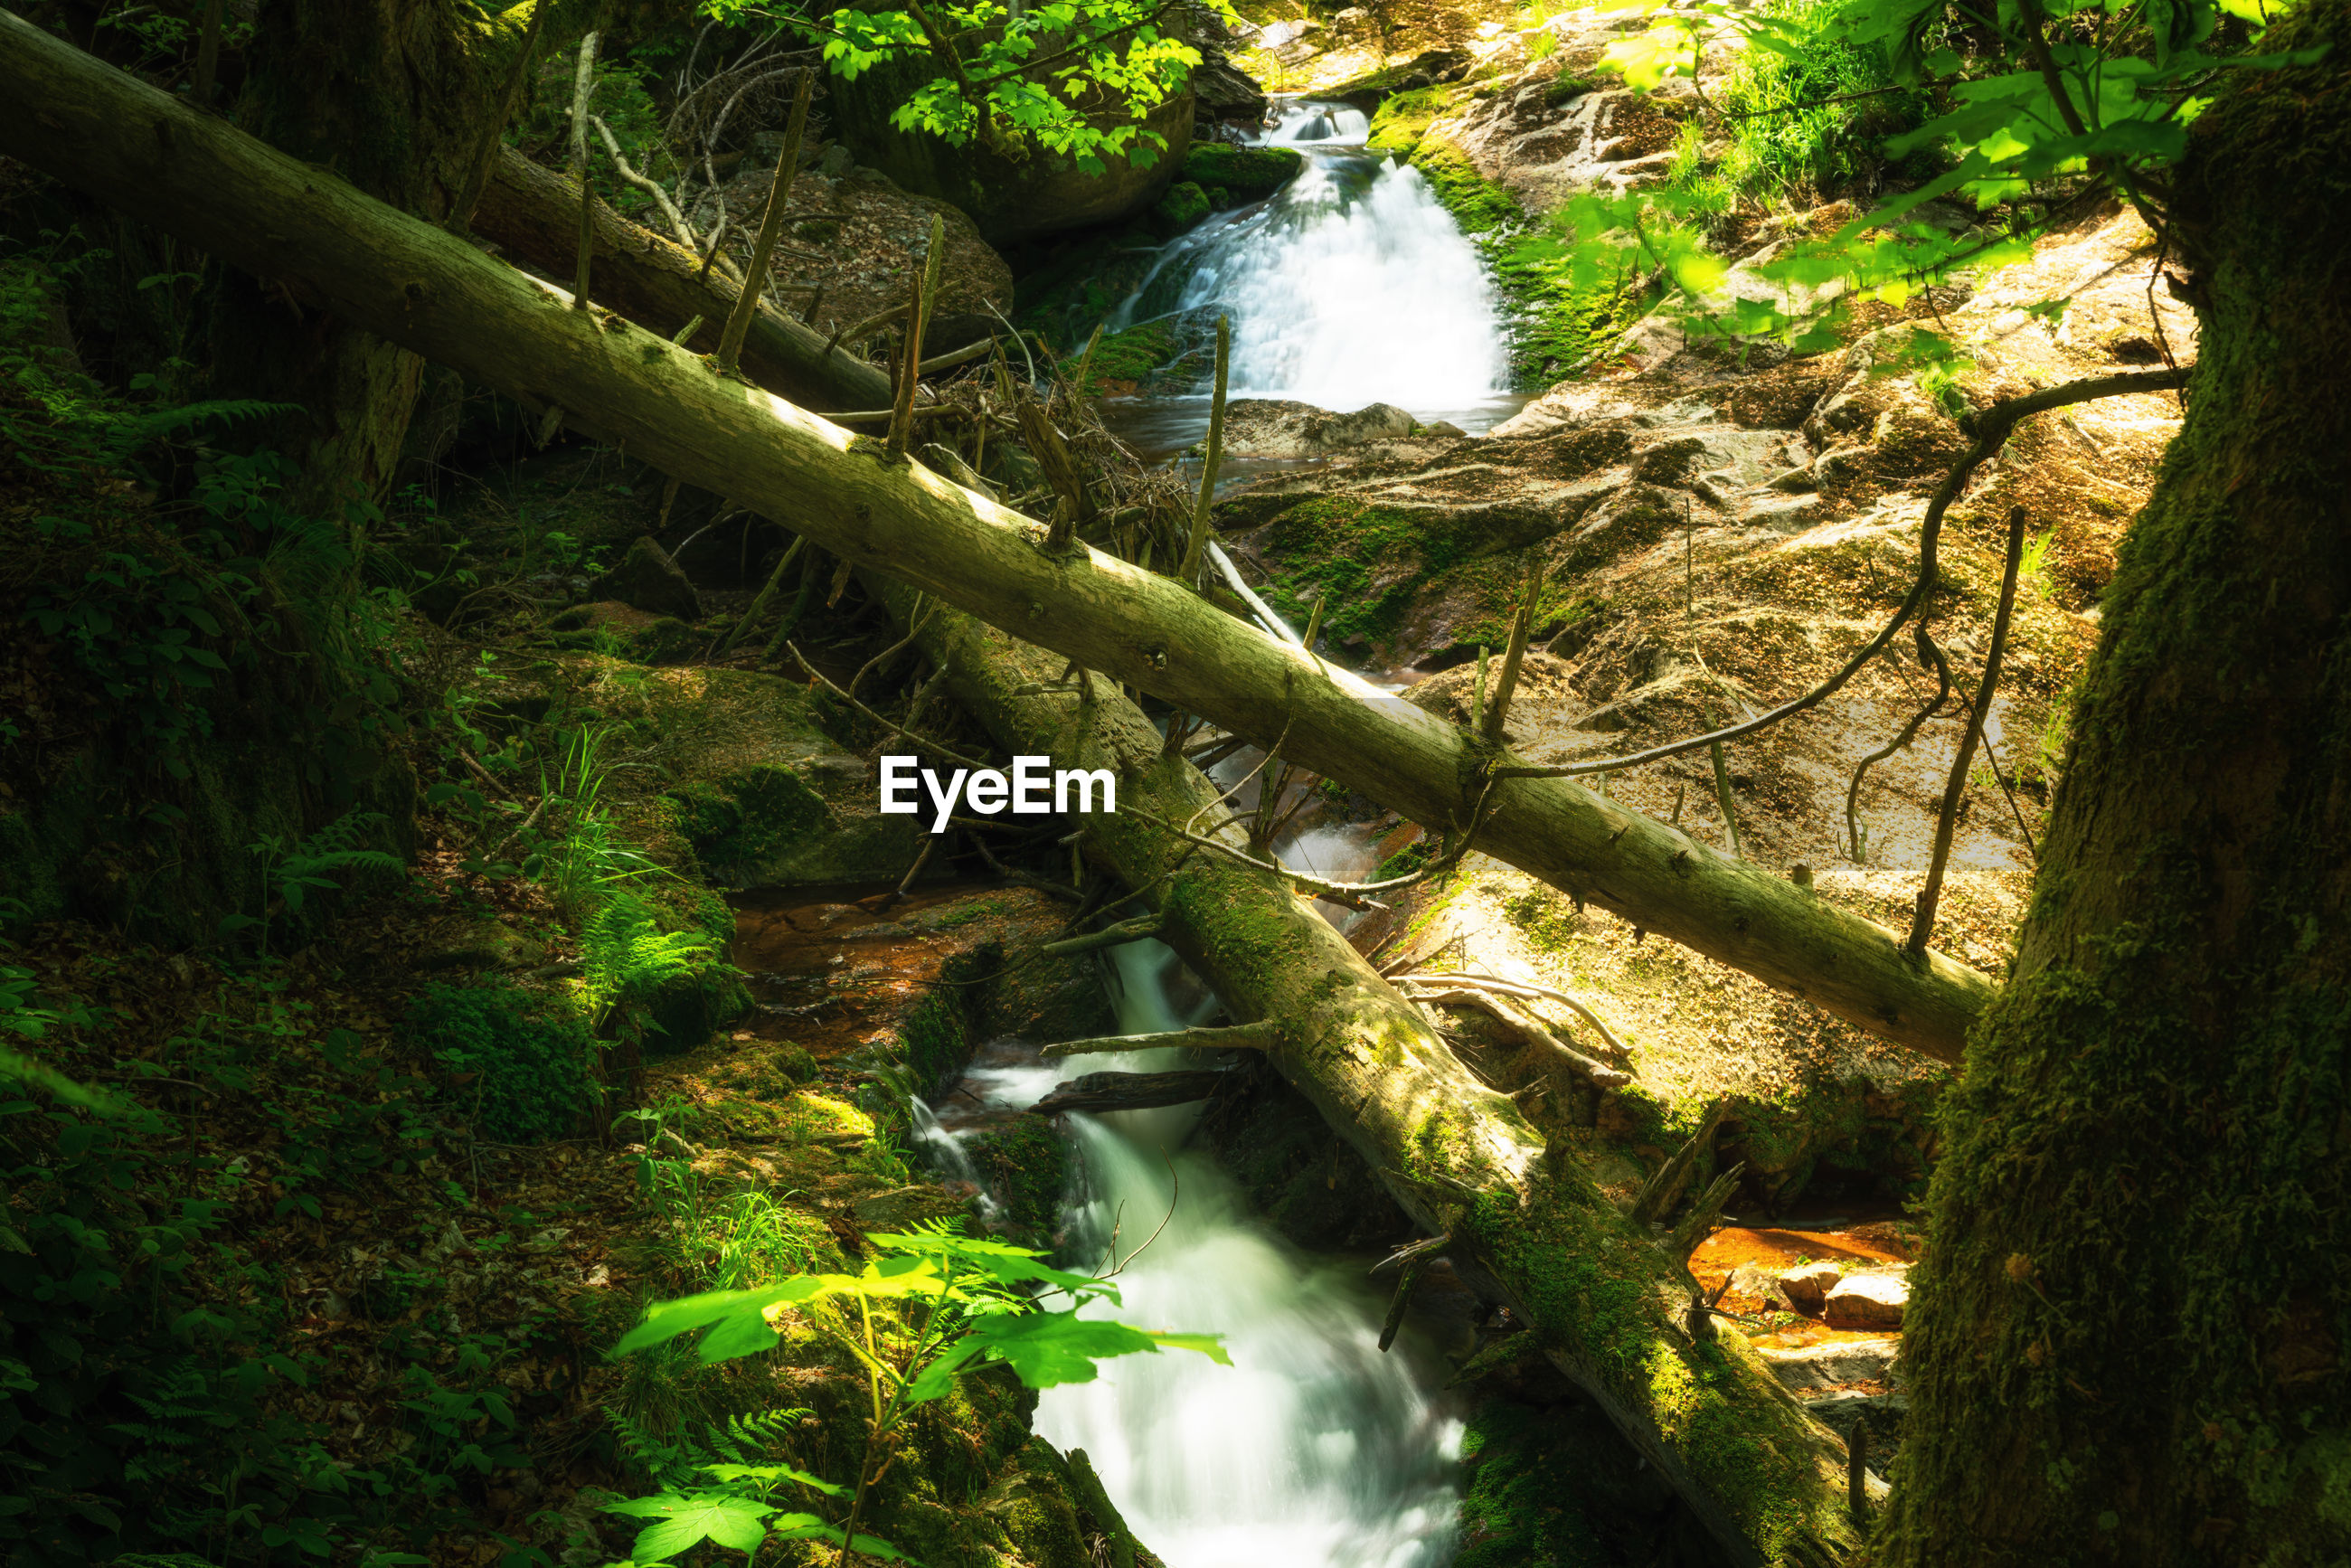 waterfall, plant, nature, water, tree, forest, rainforest, stream, beauty in nature, natural environment, land, green, jungle, woodland, scenics - nature, no people, flowing water, leaf, motion, tranquility, environment, growth, water feature, river, long exposure, old-growth forest, day, body of water, outdoors, tranquil scene, non-urban scene, flowing, wilderness, sunlight, watercourse, moss, creek, vegetation, autumn, rock, landscape, high angle view, idyllic